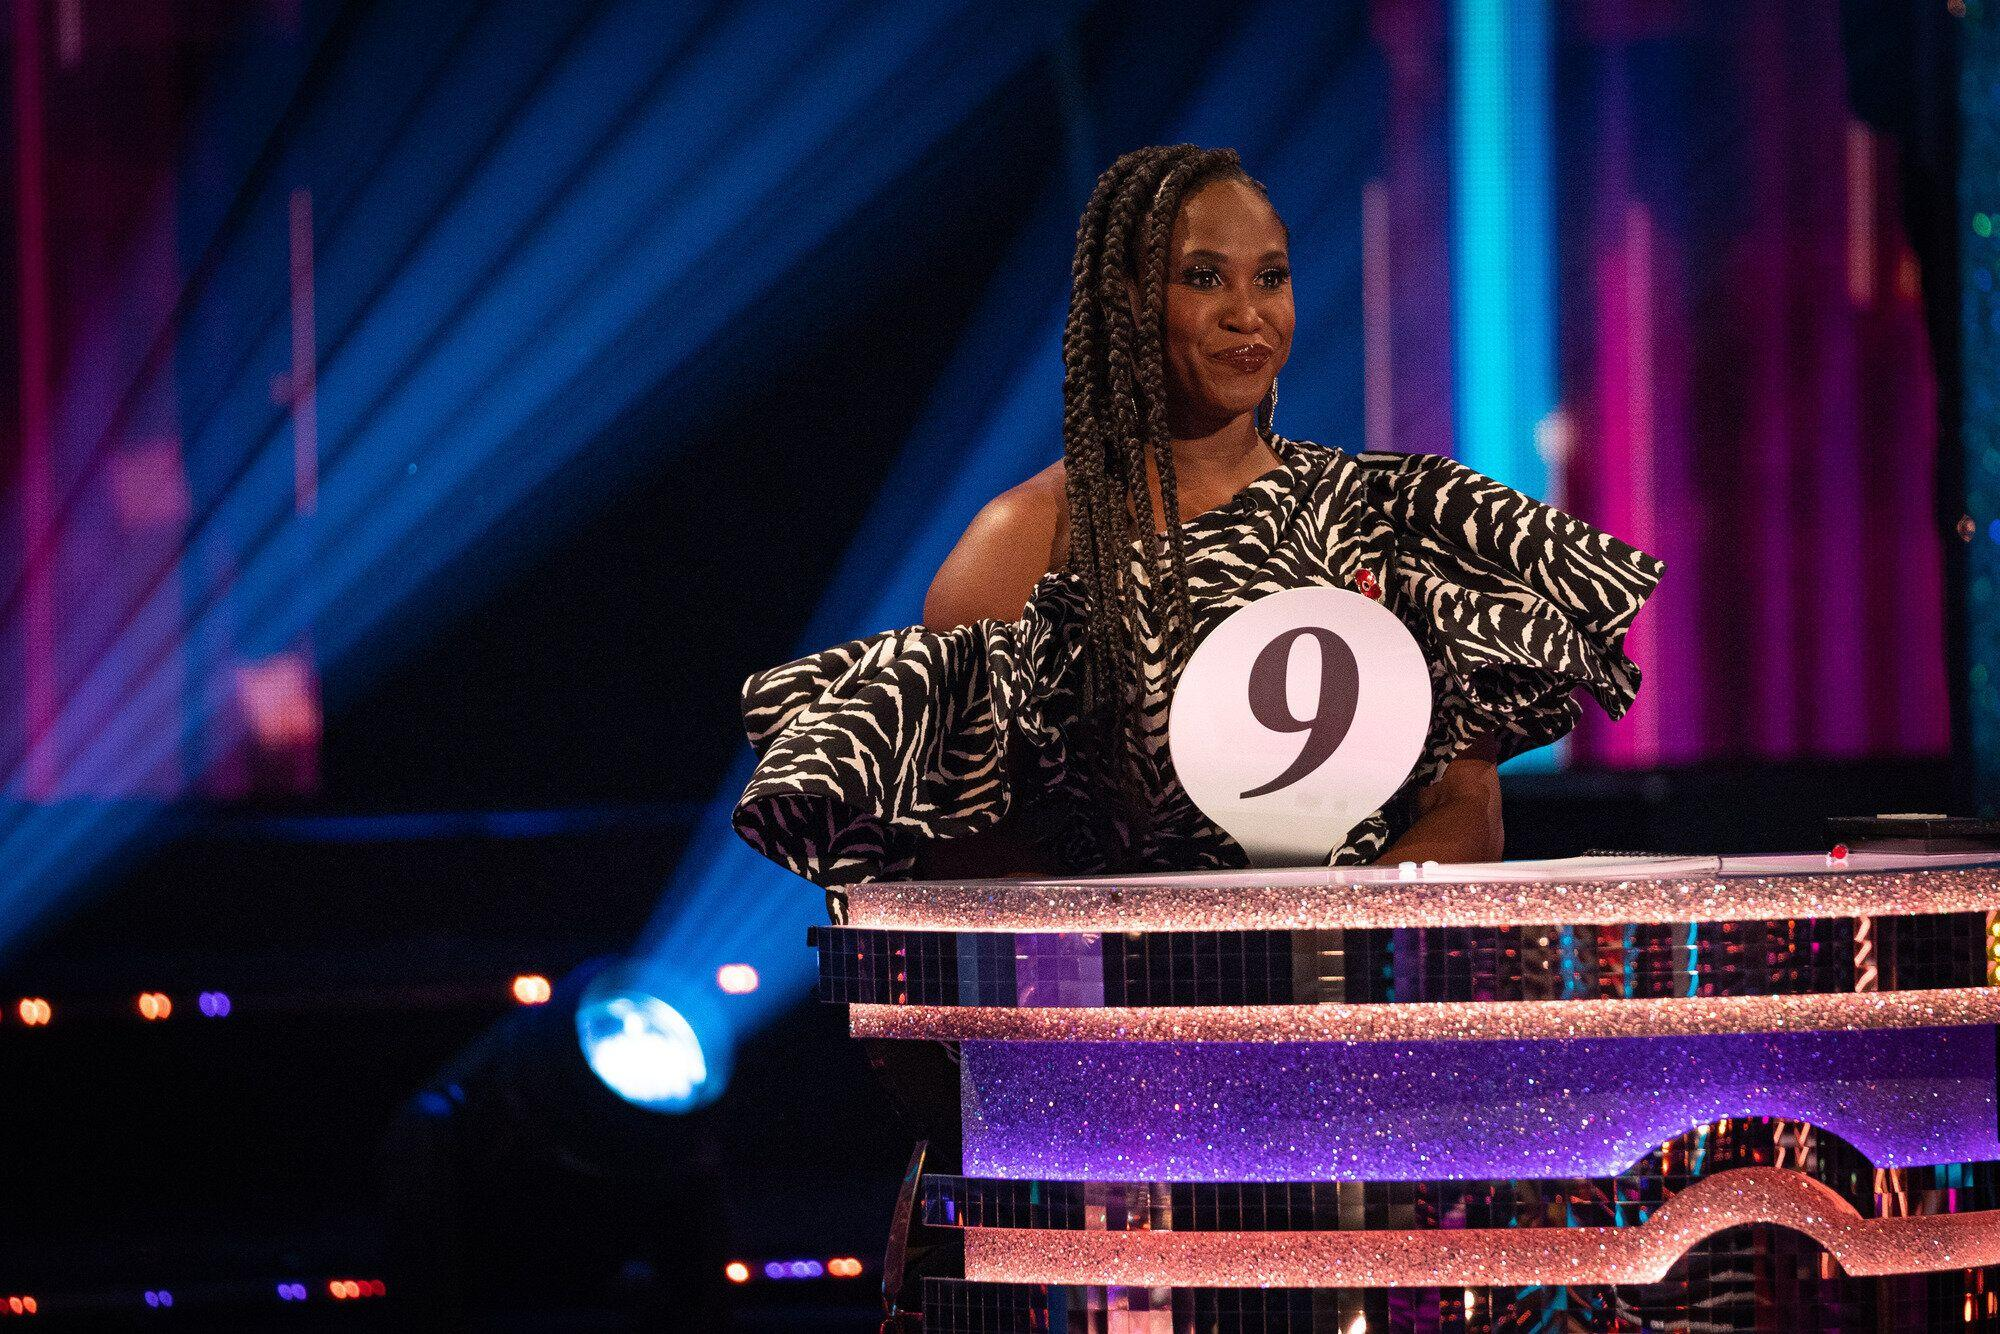 Strictly Come Dancing Judge Motsi Mabuse To Miss Two Weeks Of Live Show As She's Self-Isolating